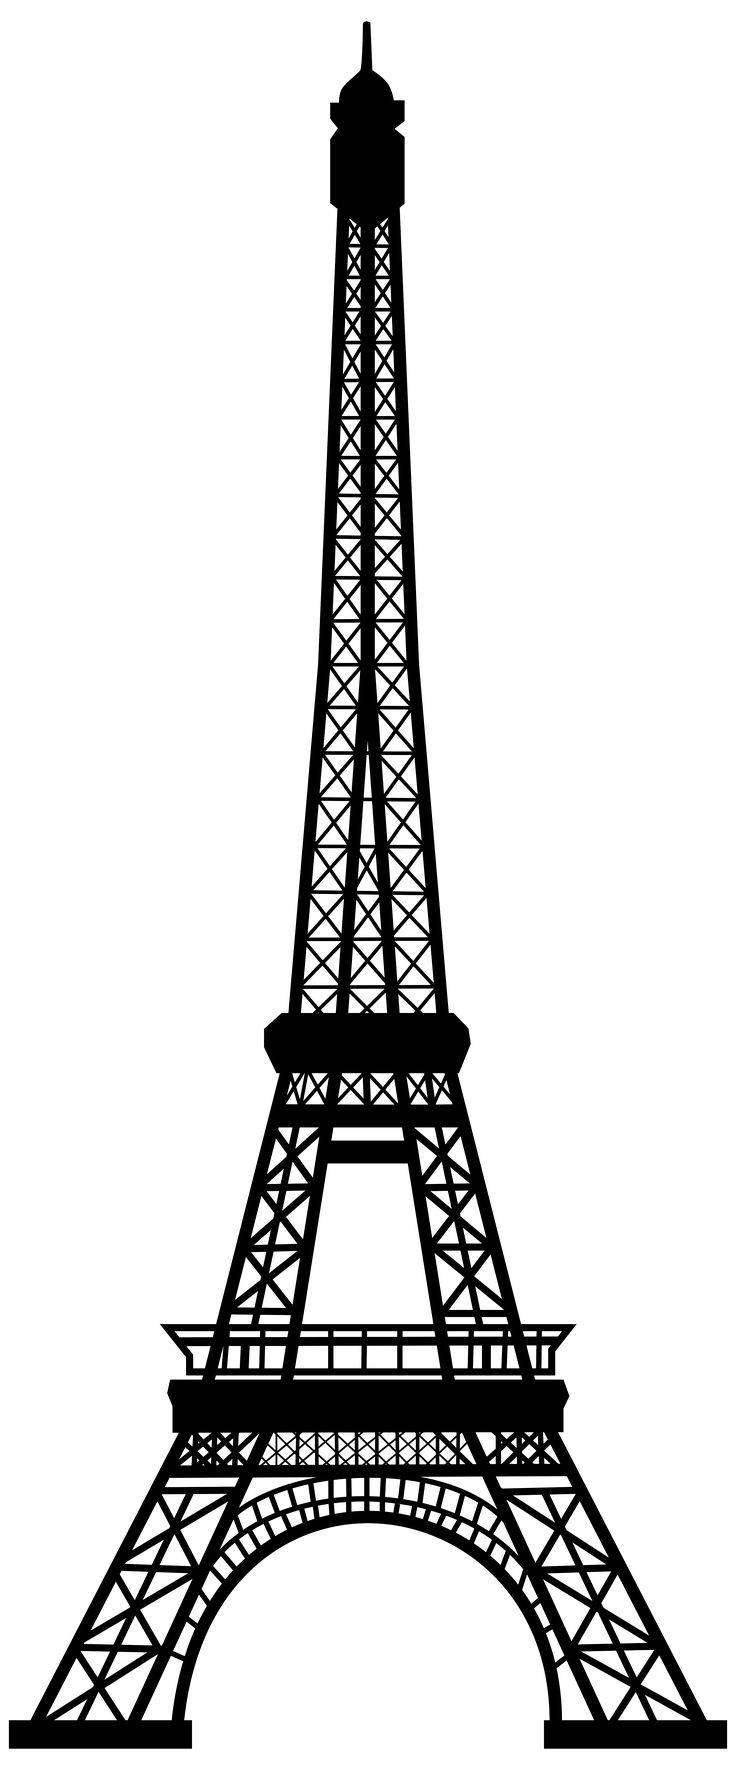 Attirant Best 25+ Eiffel Tower Art Ideas On Pinterest | Eiffel Tower With Most Up To